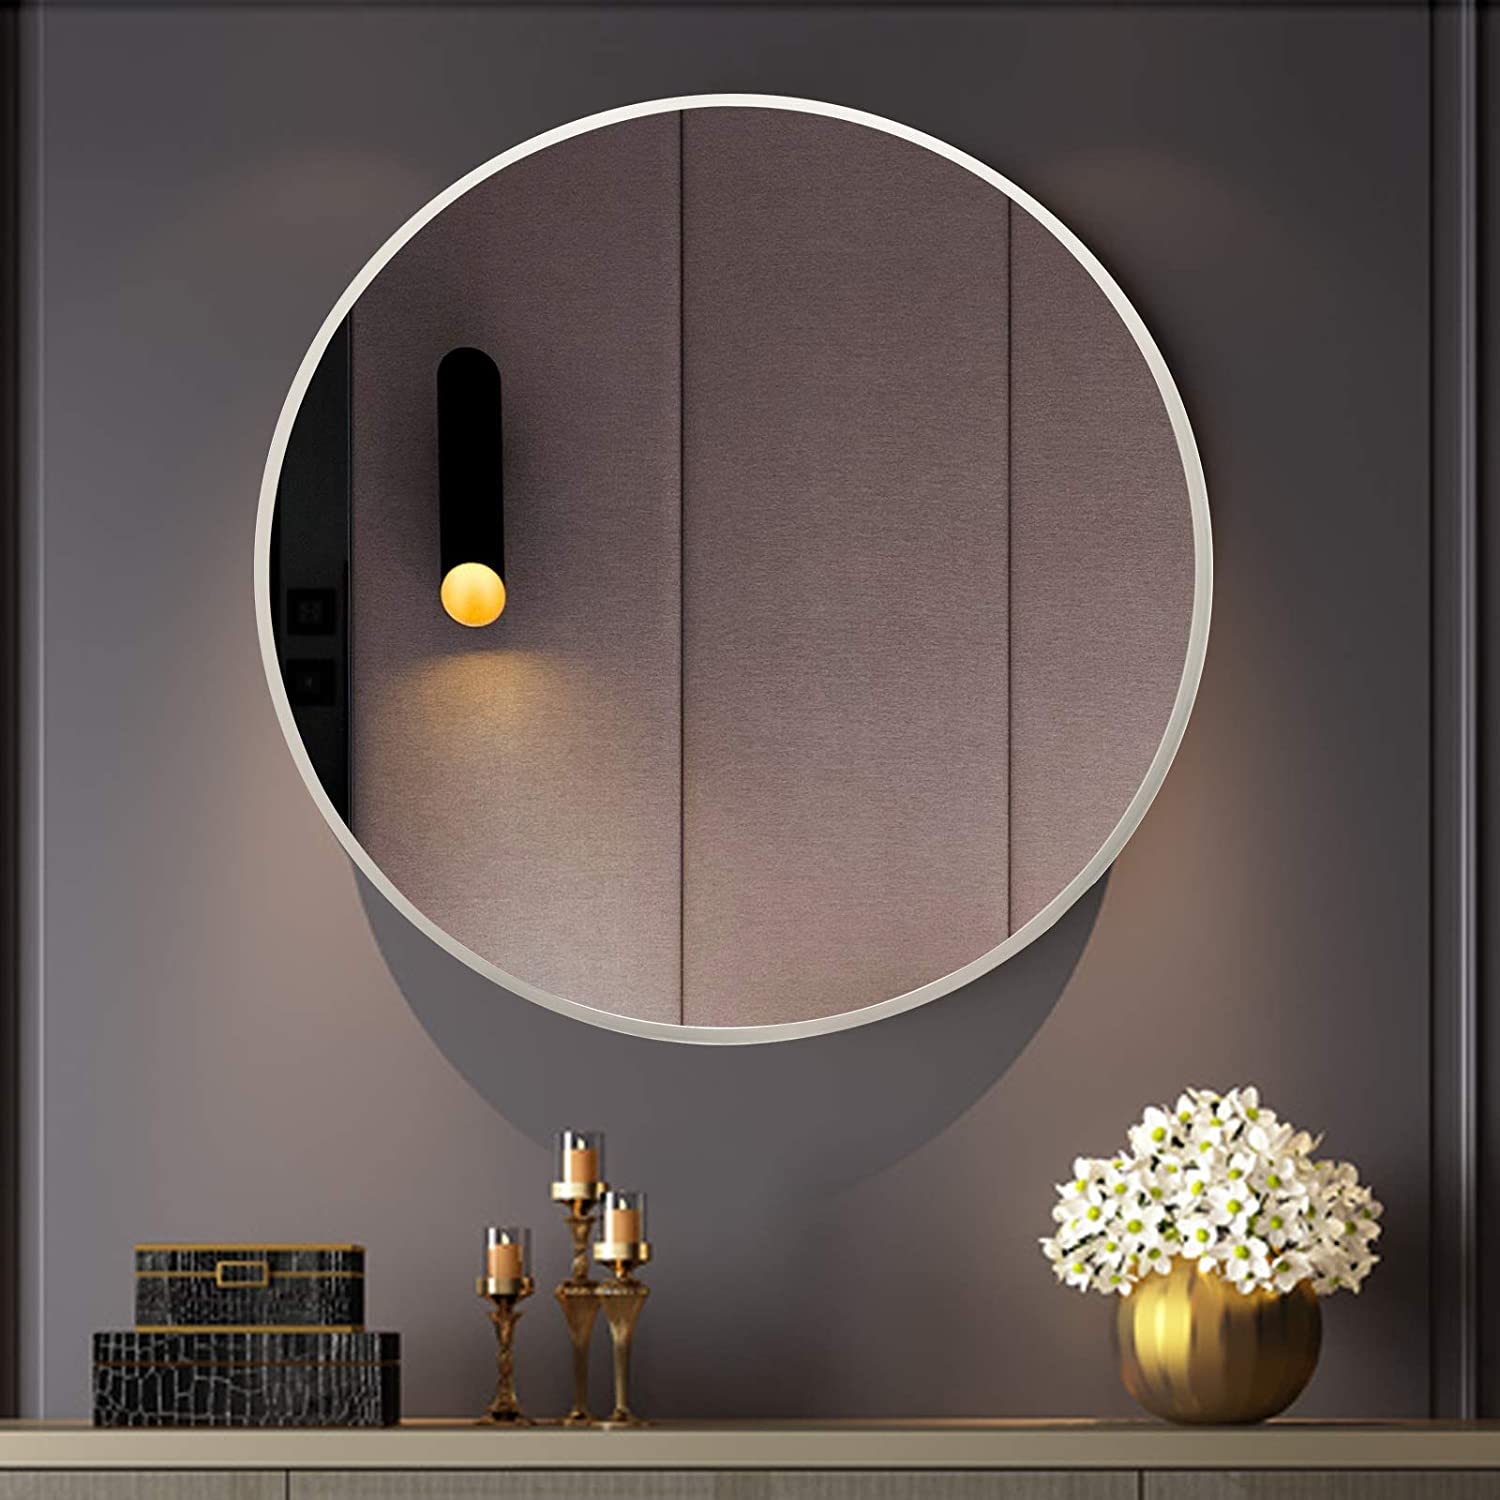 BEAUTYPEAK Round Wall Mirror 24-Inch Circle Wall Wall-Mounted Decor Mirrors with Metal Frame for Entryways, Vanity, Washrooms, Living Rooms, Bathroom, Hallway, Silver